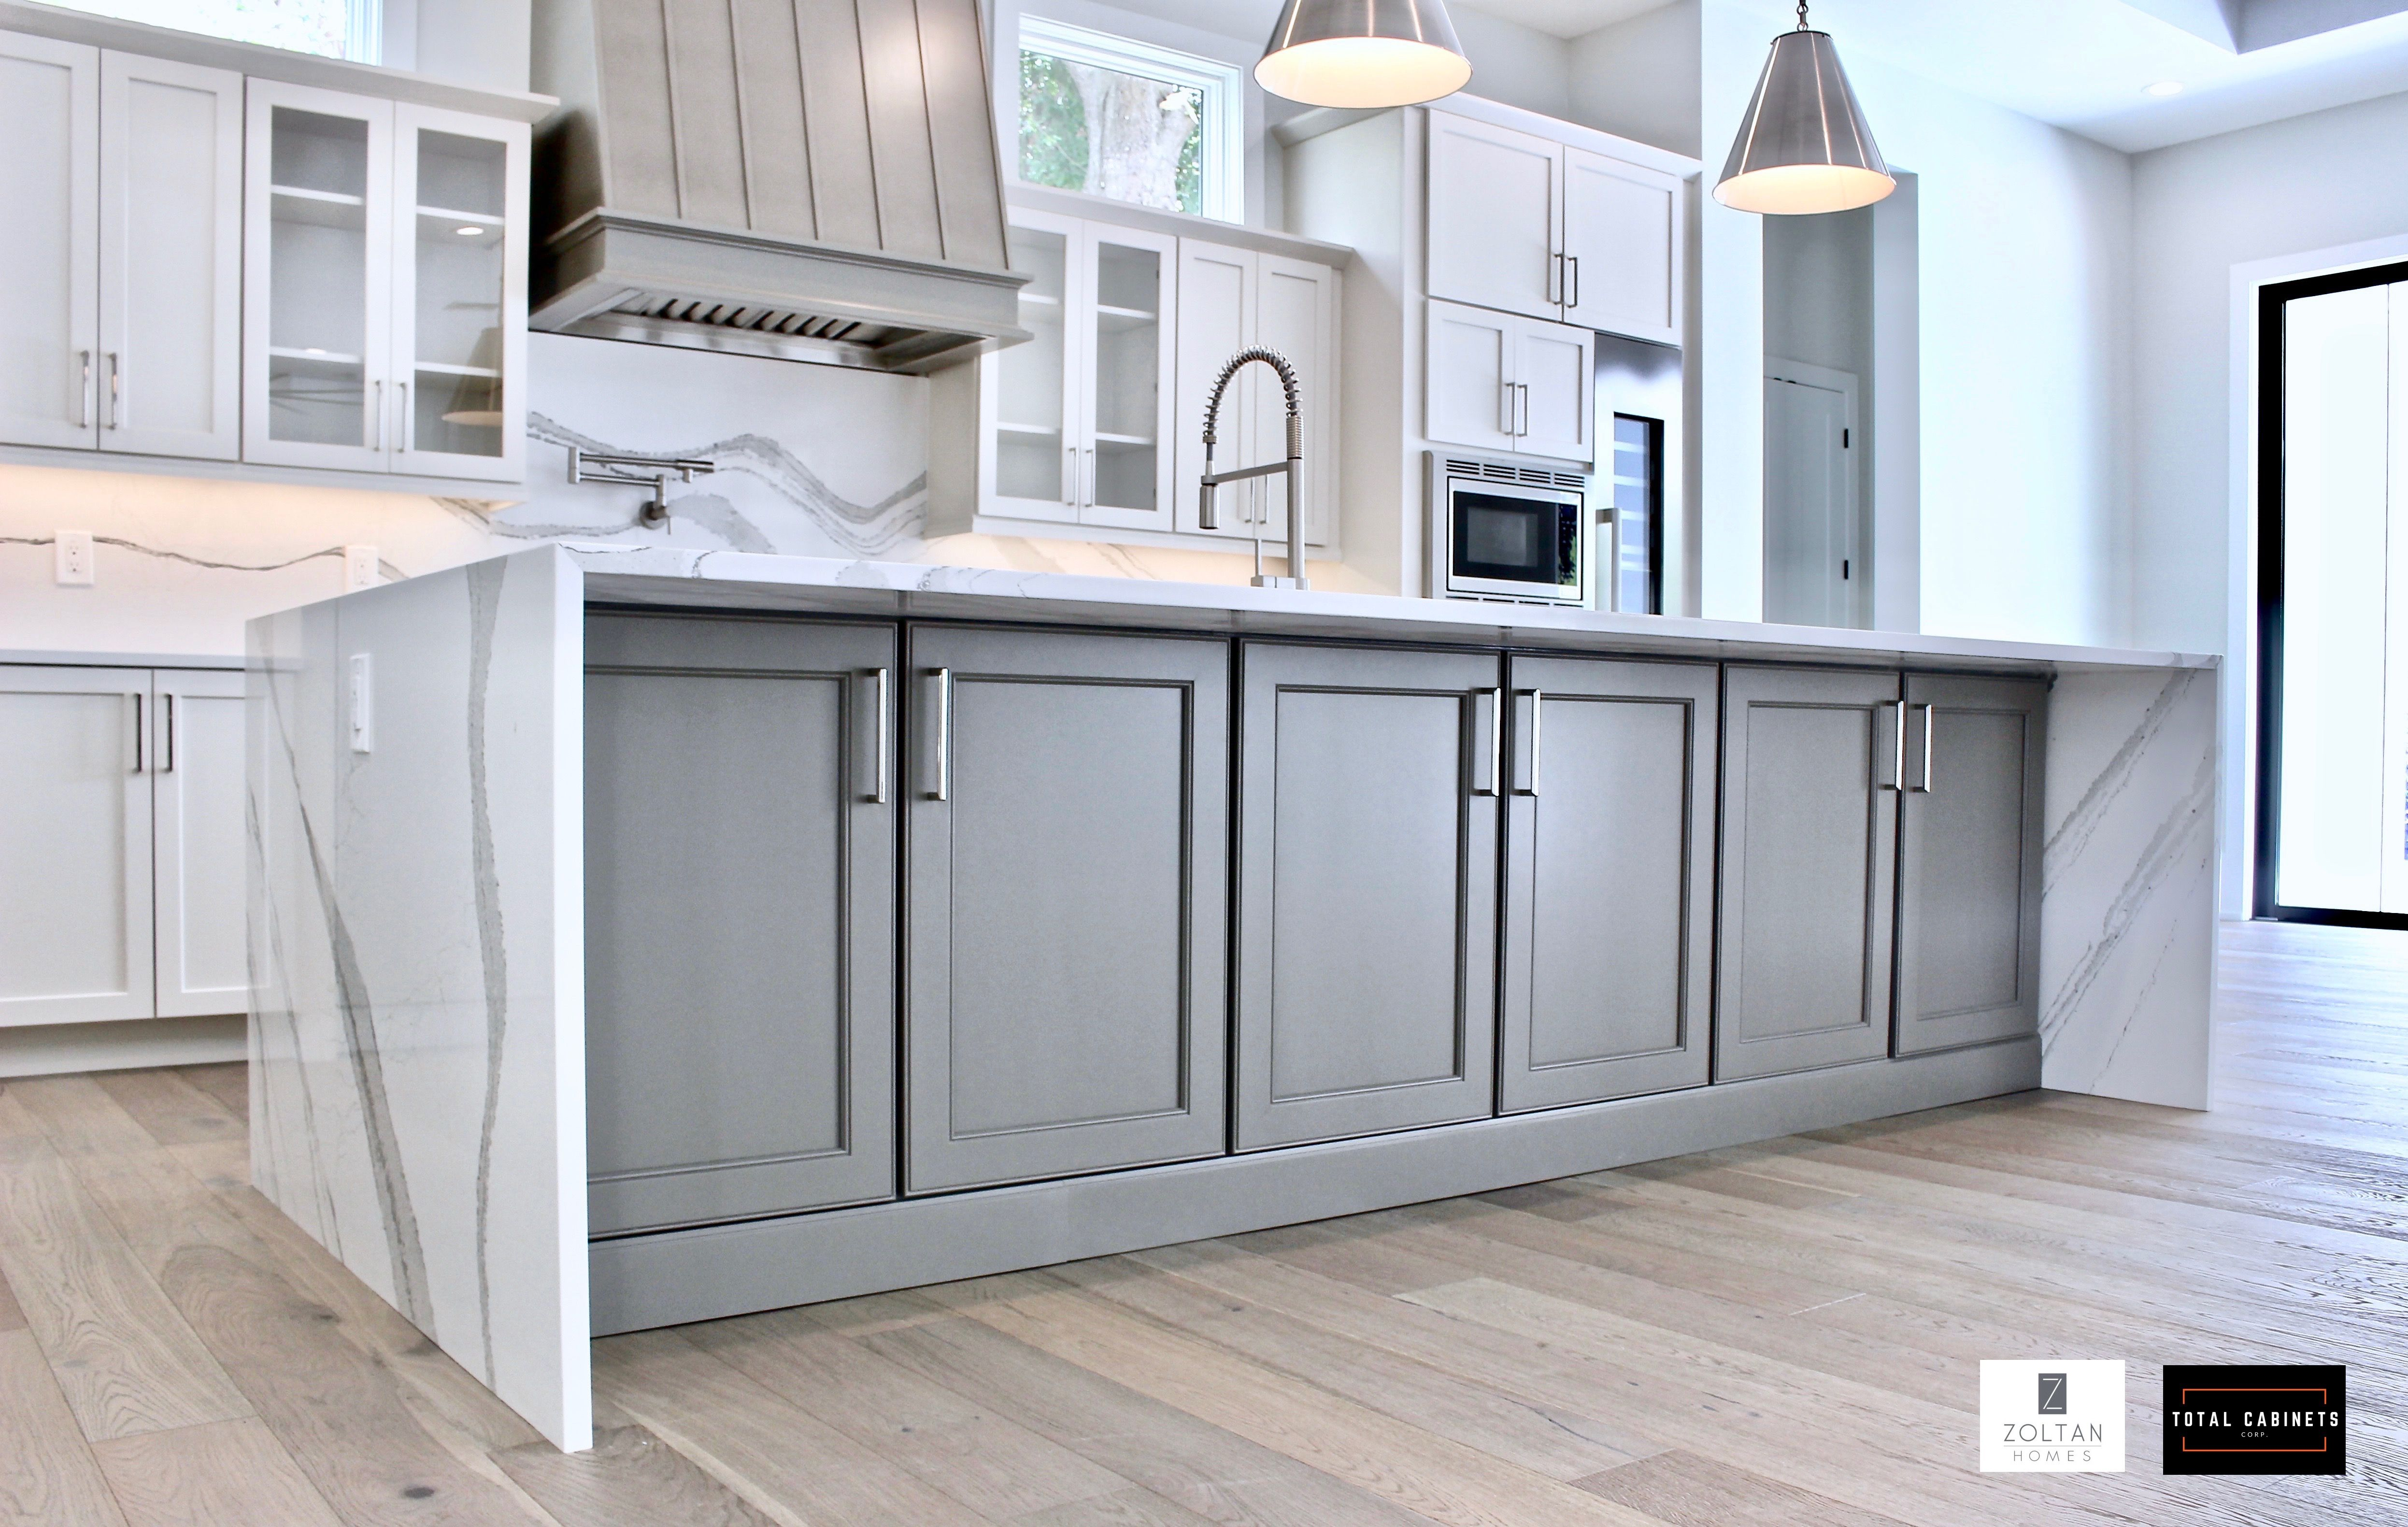 Transitional Kitchen With Waterfall Island White And Gray Shaker Cabinets Combined With Edgy Black Kitchen Island Kitchen Island Cabinets Grey Kitchen Island